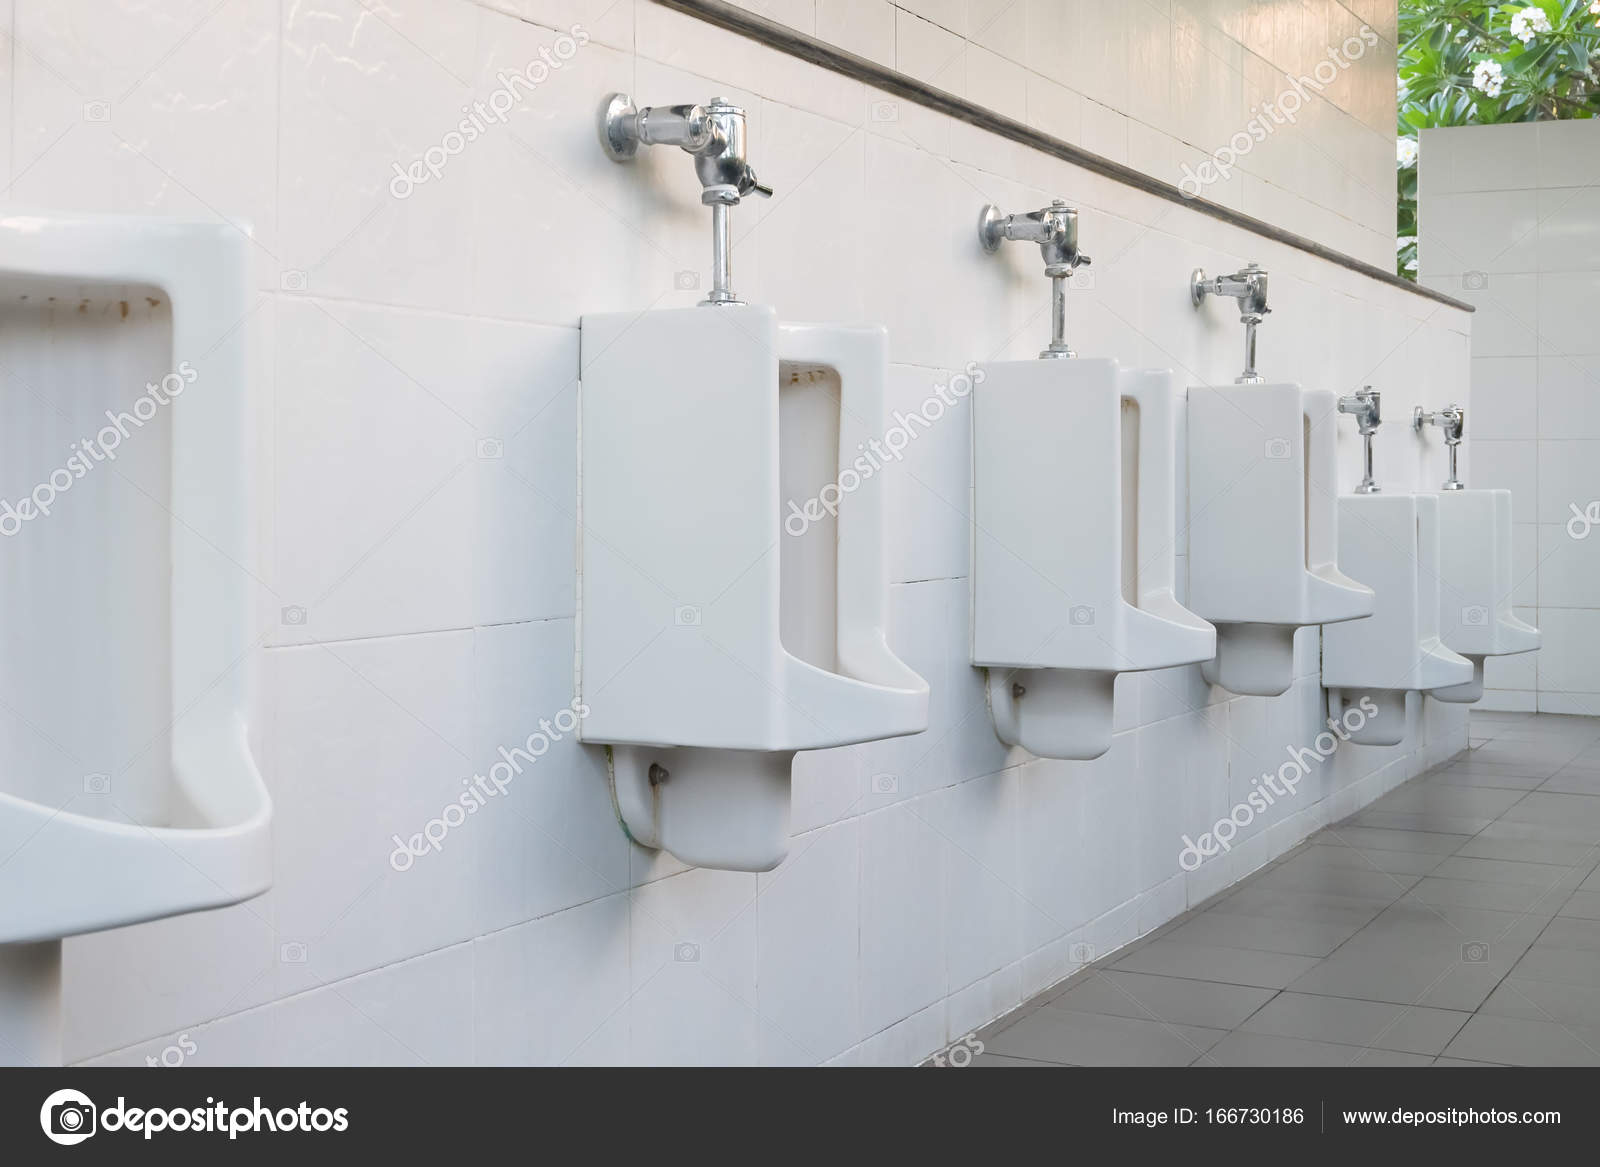 Urinal Tile Wall — Stock Photo © roncivil #166730186